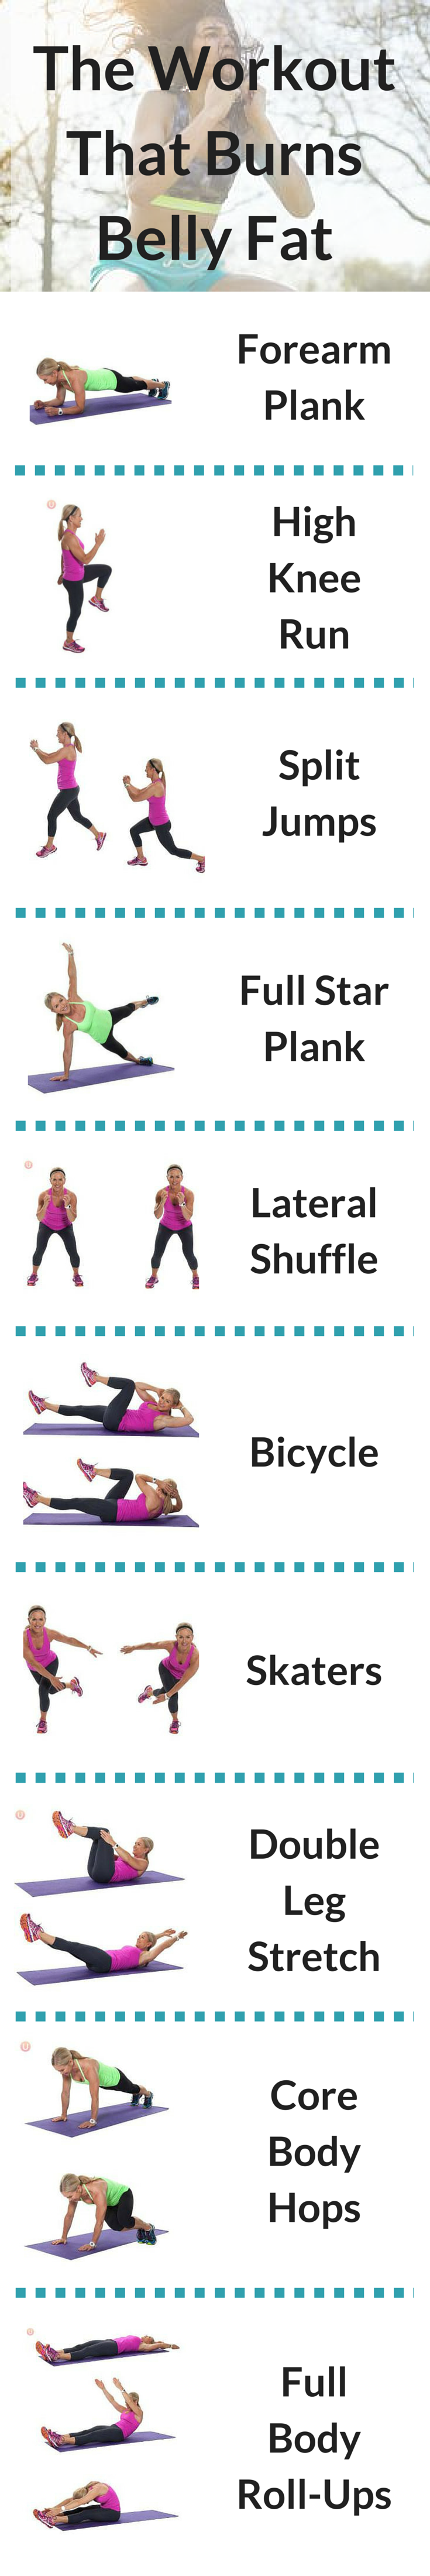 Pin on Fitness & Exercise